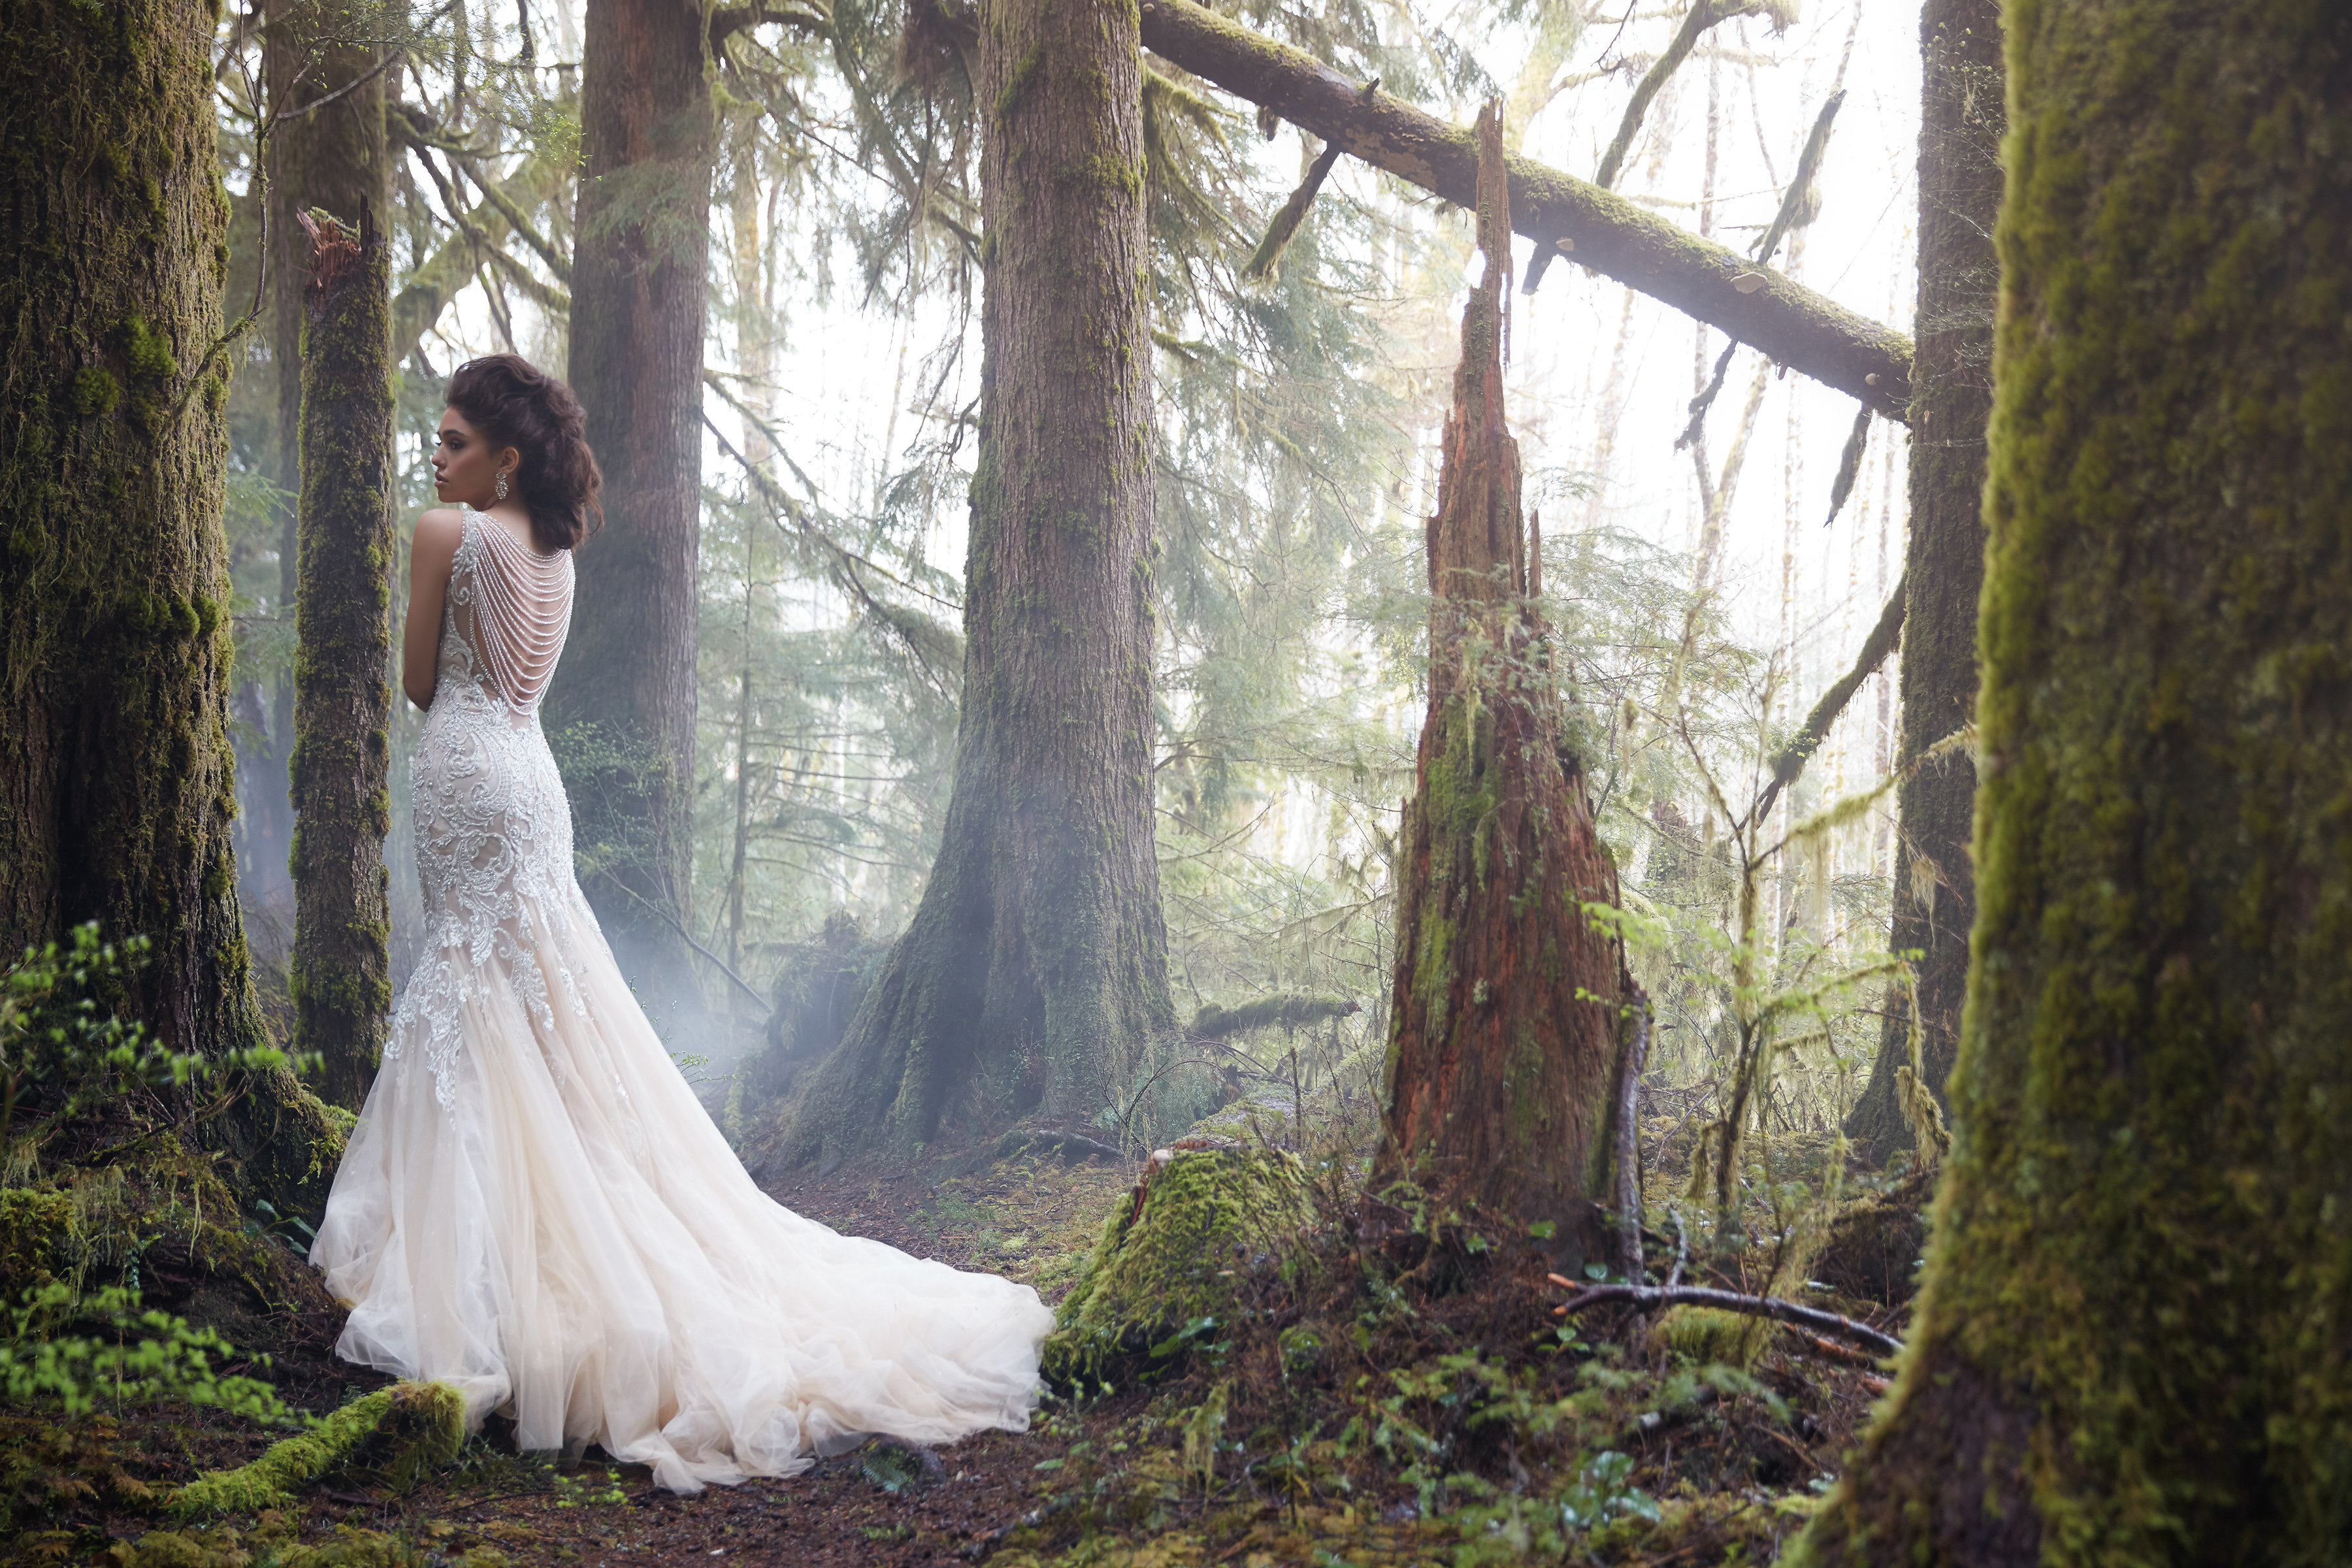 The Wedding Gown Tampa Search Begins And Ends At Nikkis With Best Selection Most Professional Friendly Stylists